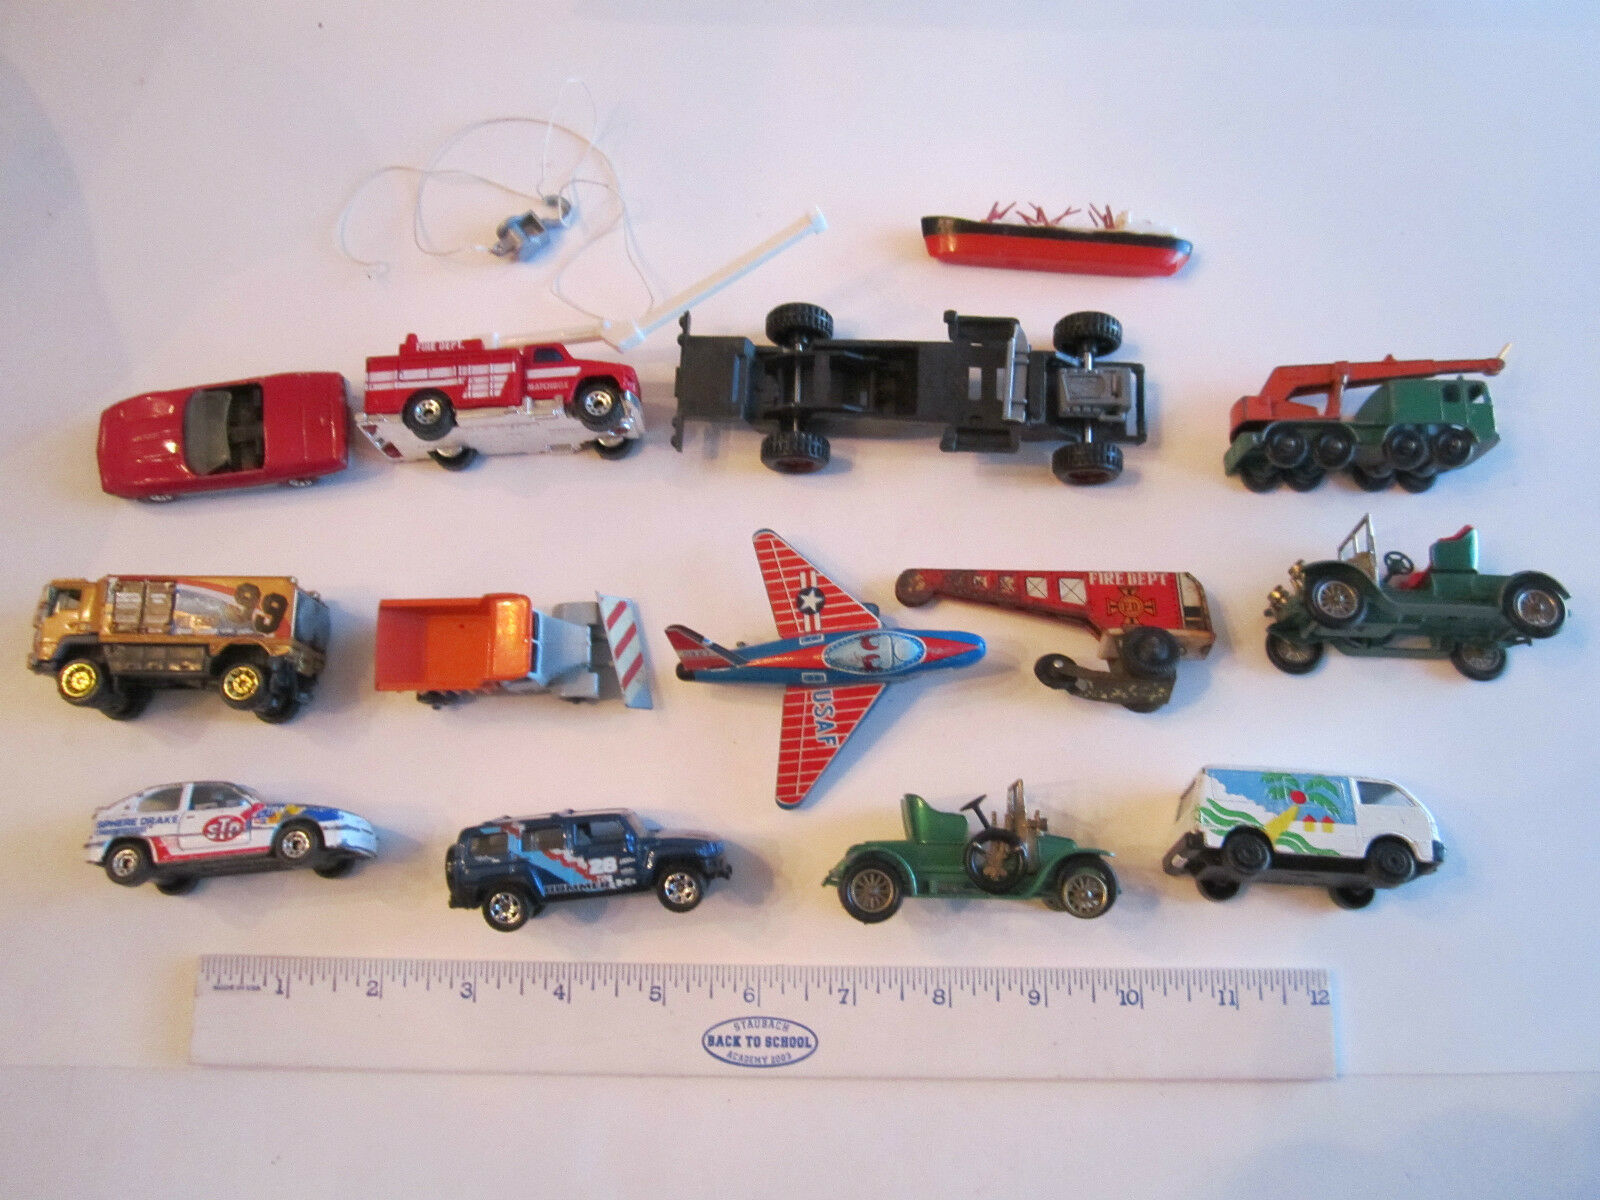 COLLECTION OF VTG. DIECAST CARS - METAL & PLASTIC - UNSEARCHED - LOT 2 - TUB RRR